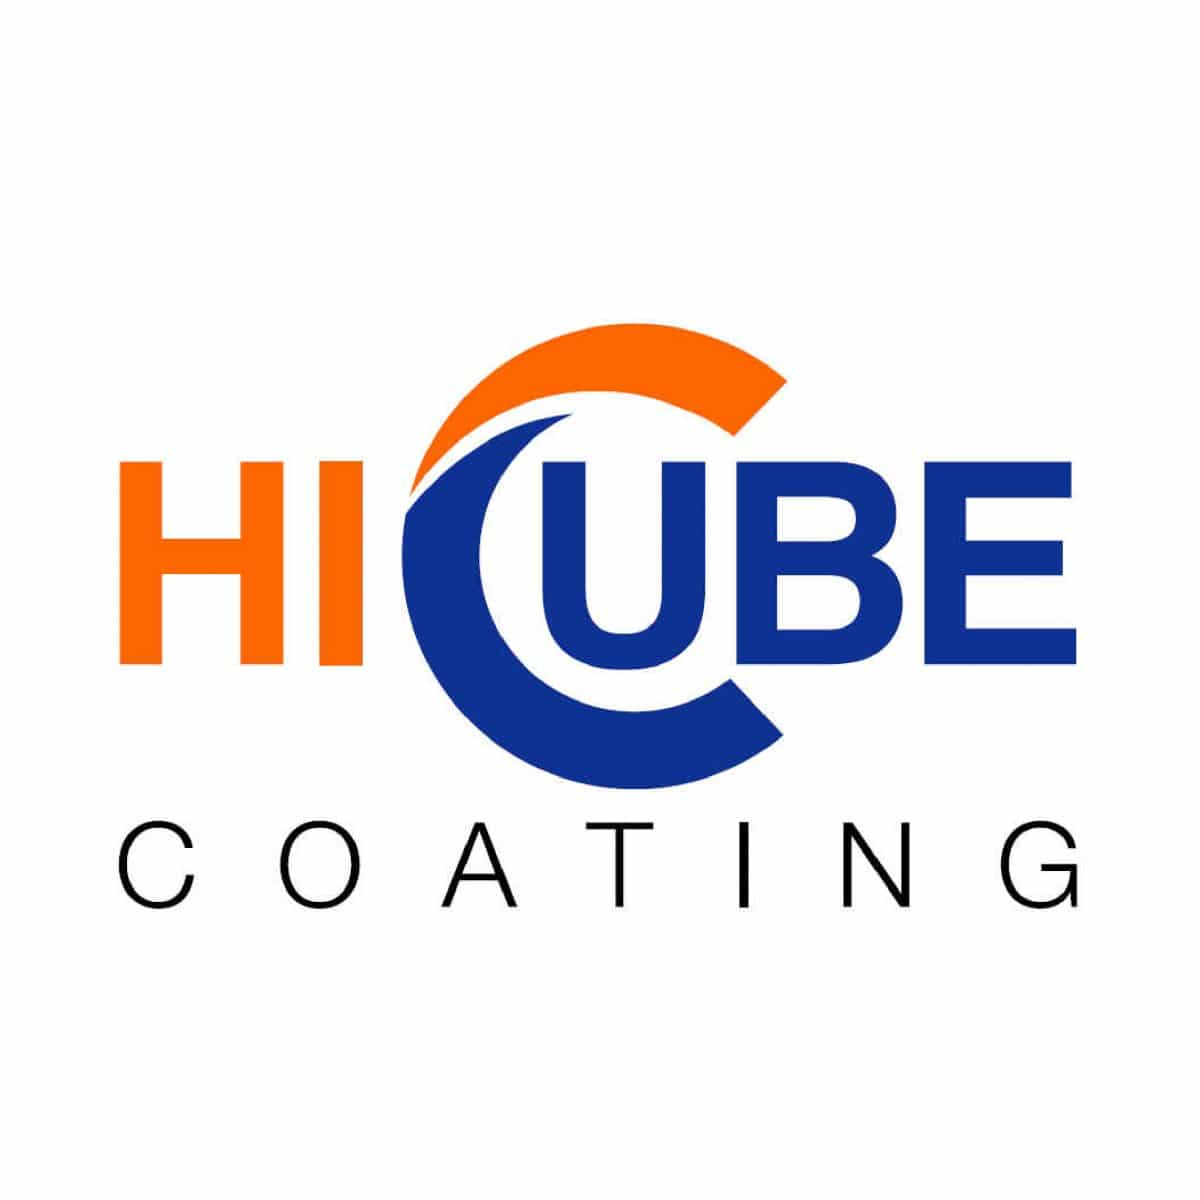 HiCube Coating, LLC